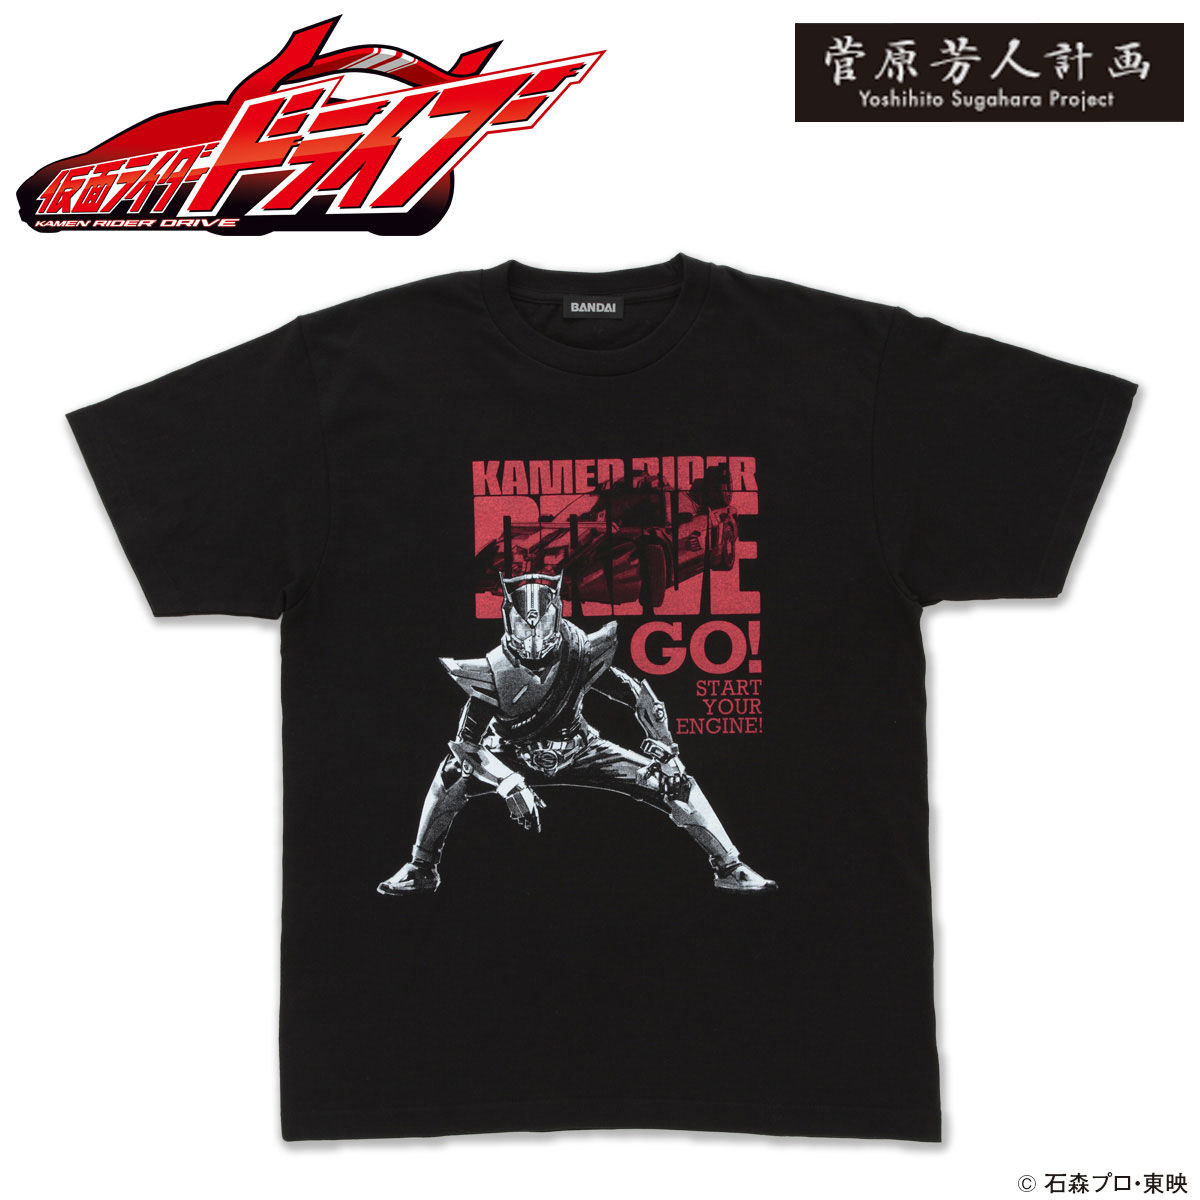 Yoshihito Sugahara Project Kamen Rider Drive And Tridoron T-Shirt